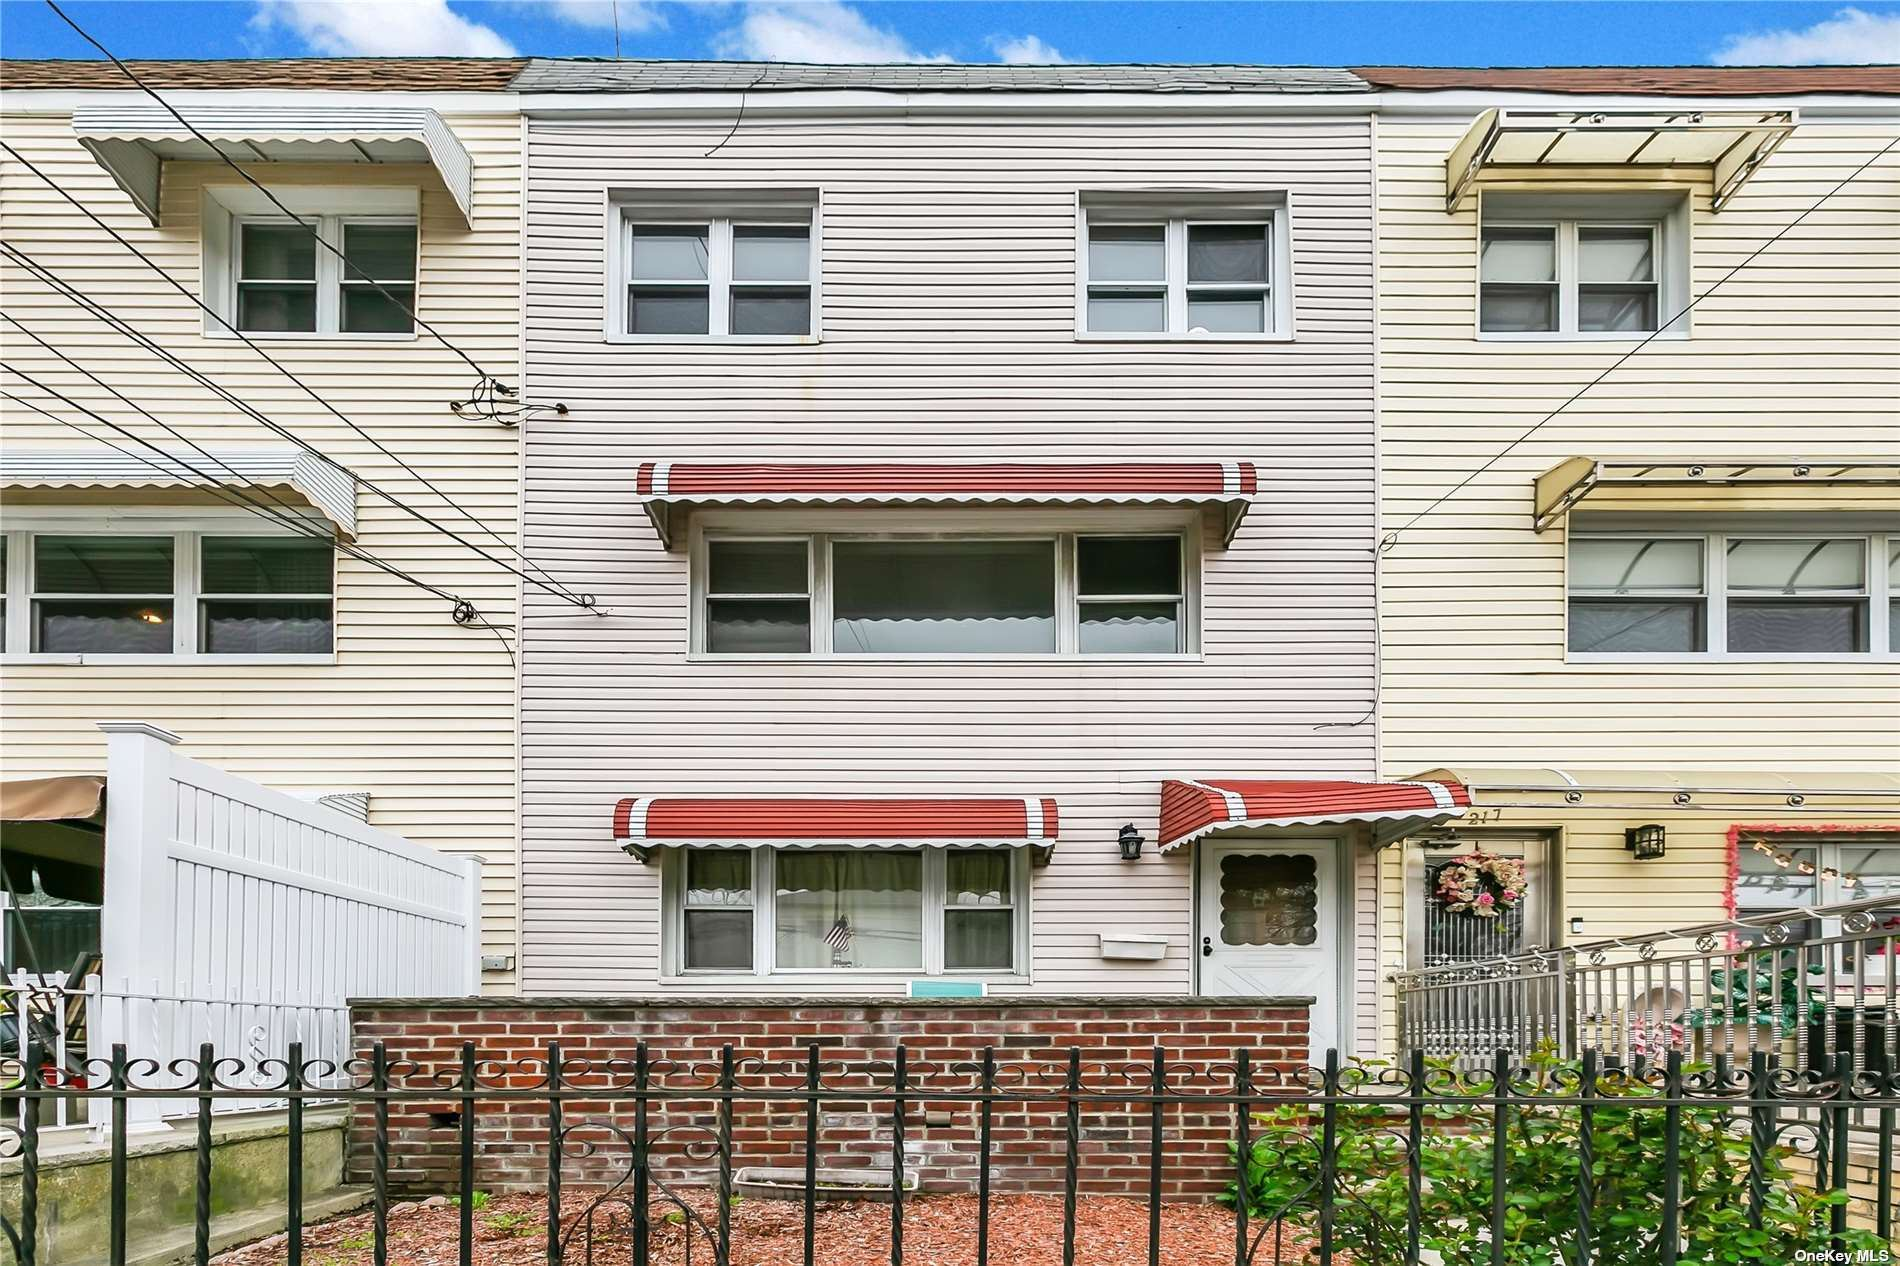 215 Meagher Ave, Bronx, NY 10465 - MLS#: 3302004